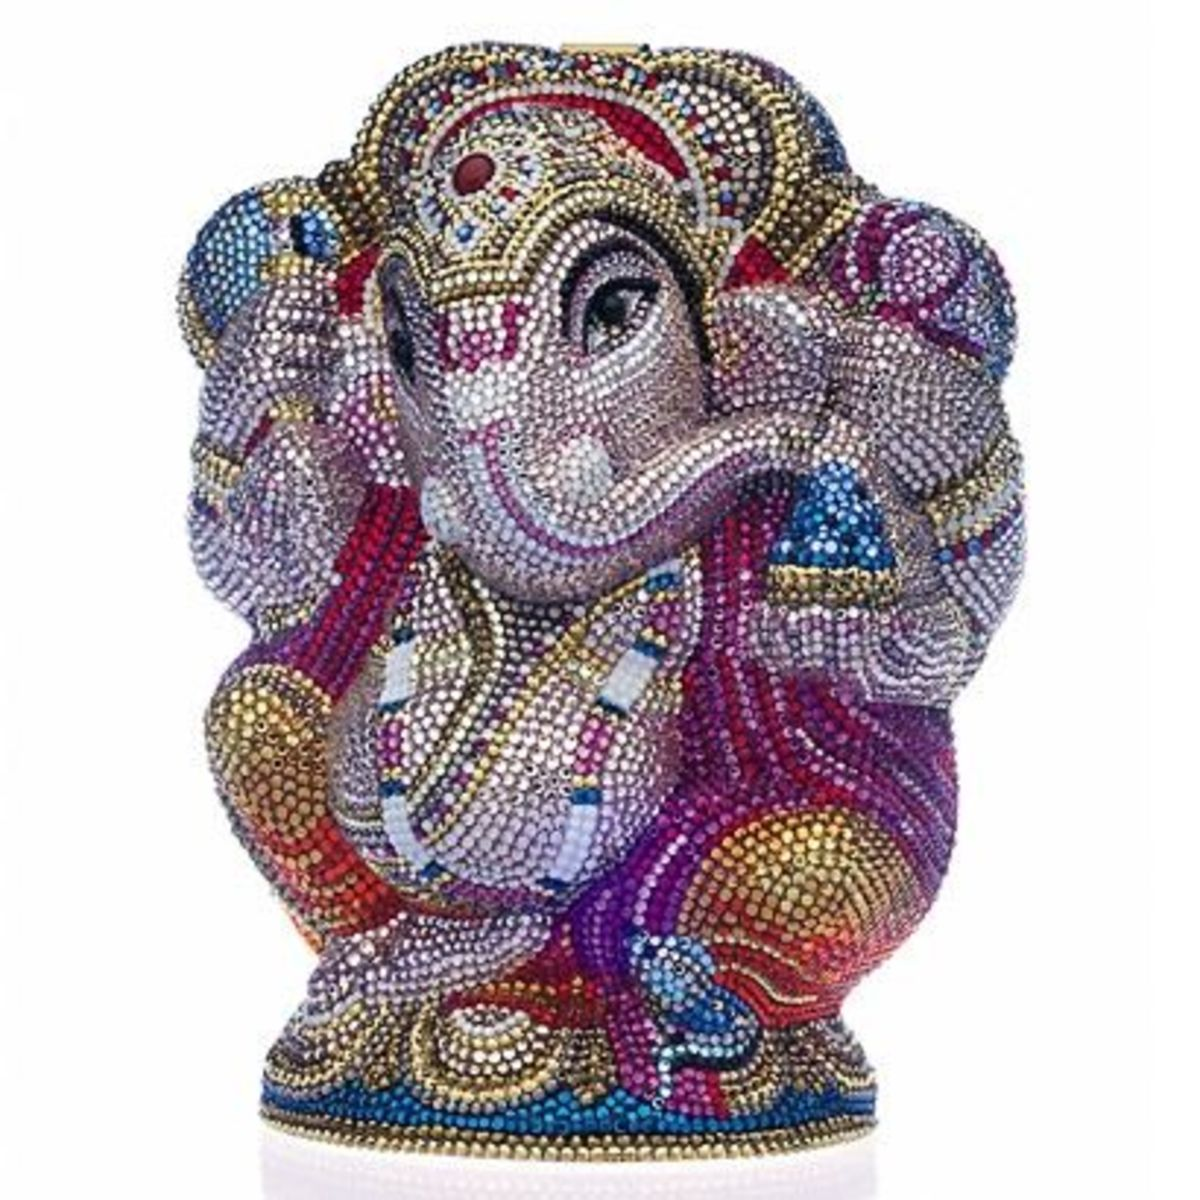 GANESHPrice: $5,595For those of you that want something that is exquisitely crafted, I know you will like this. It has been fully beaded with Austrian crystal. It has been accented by black onyx and carnelian. It will be beautifully boxed with a s